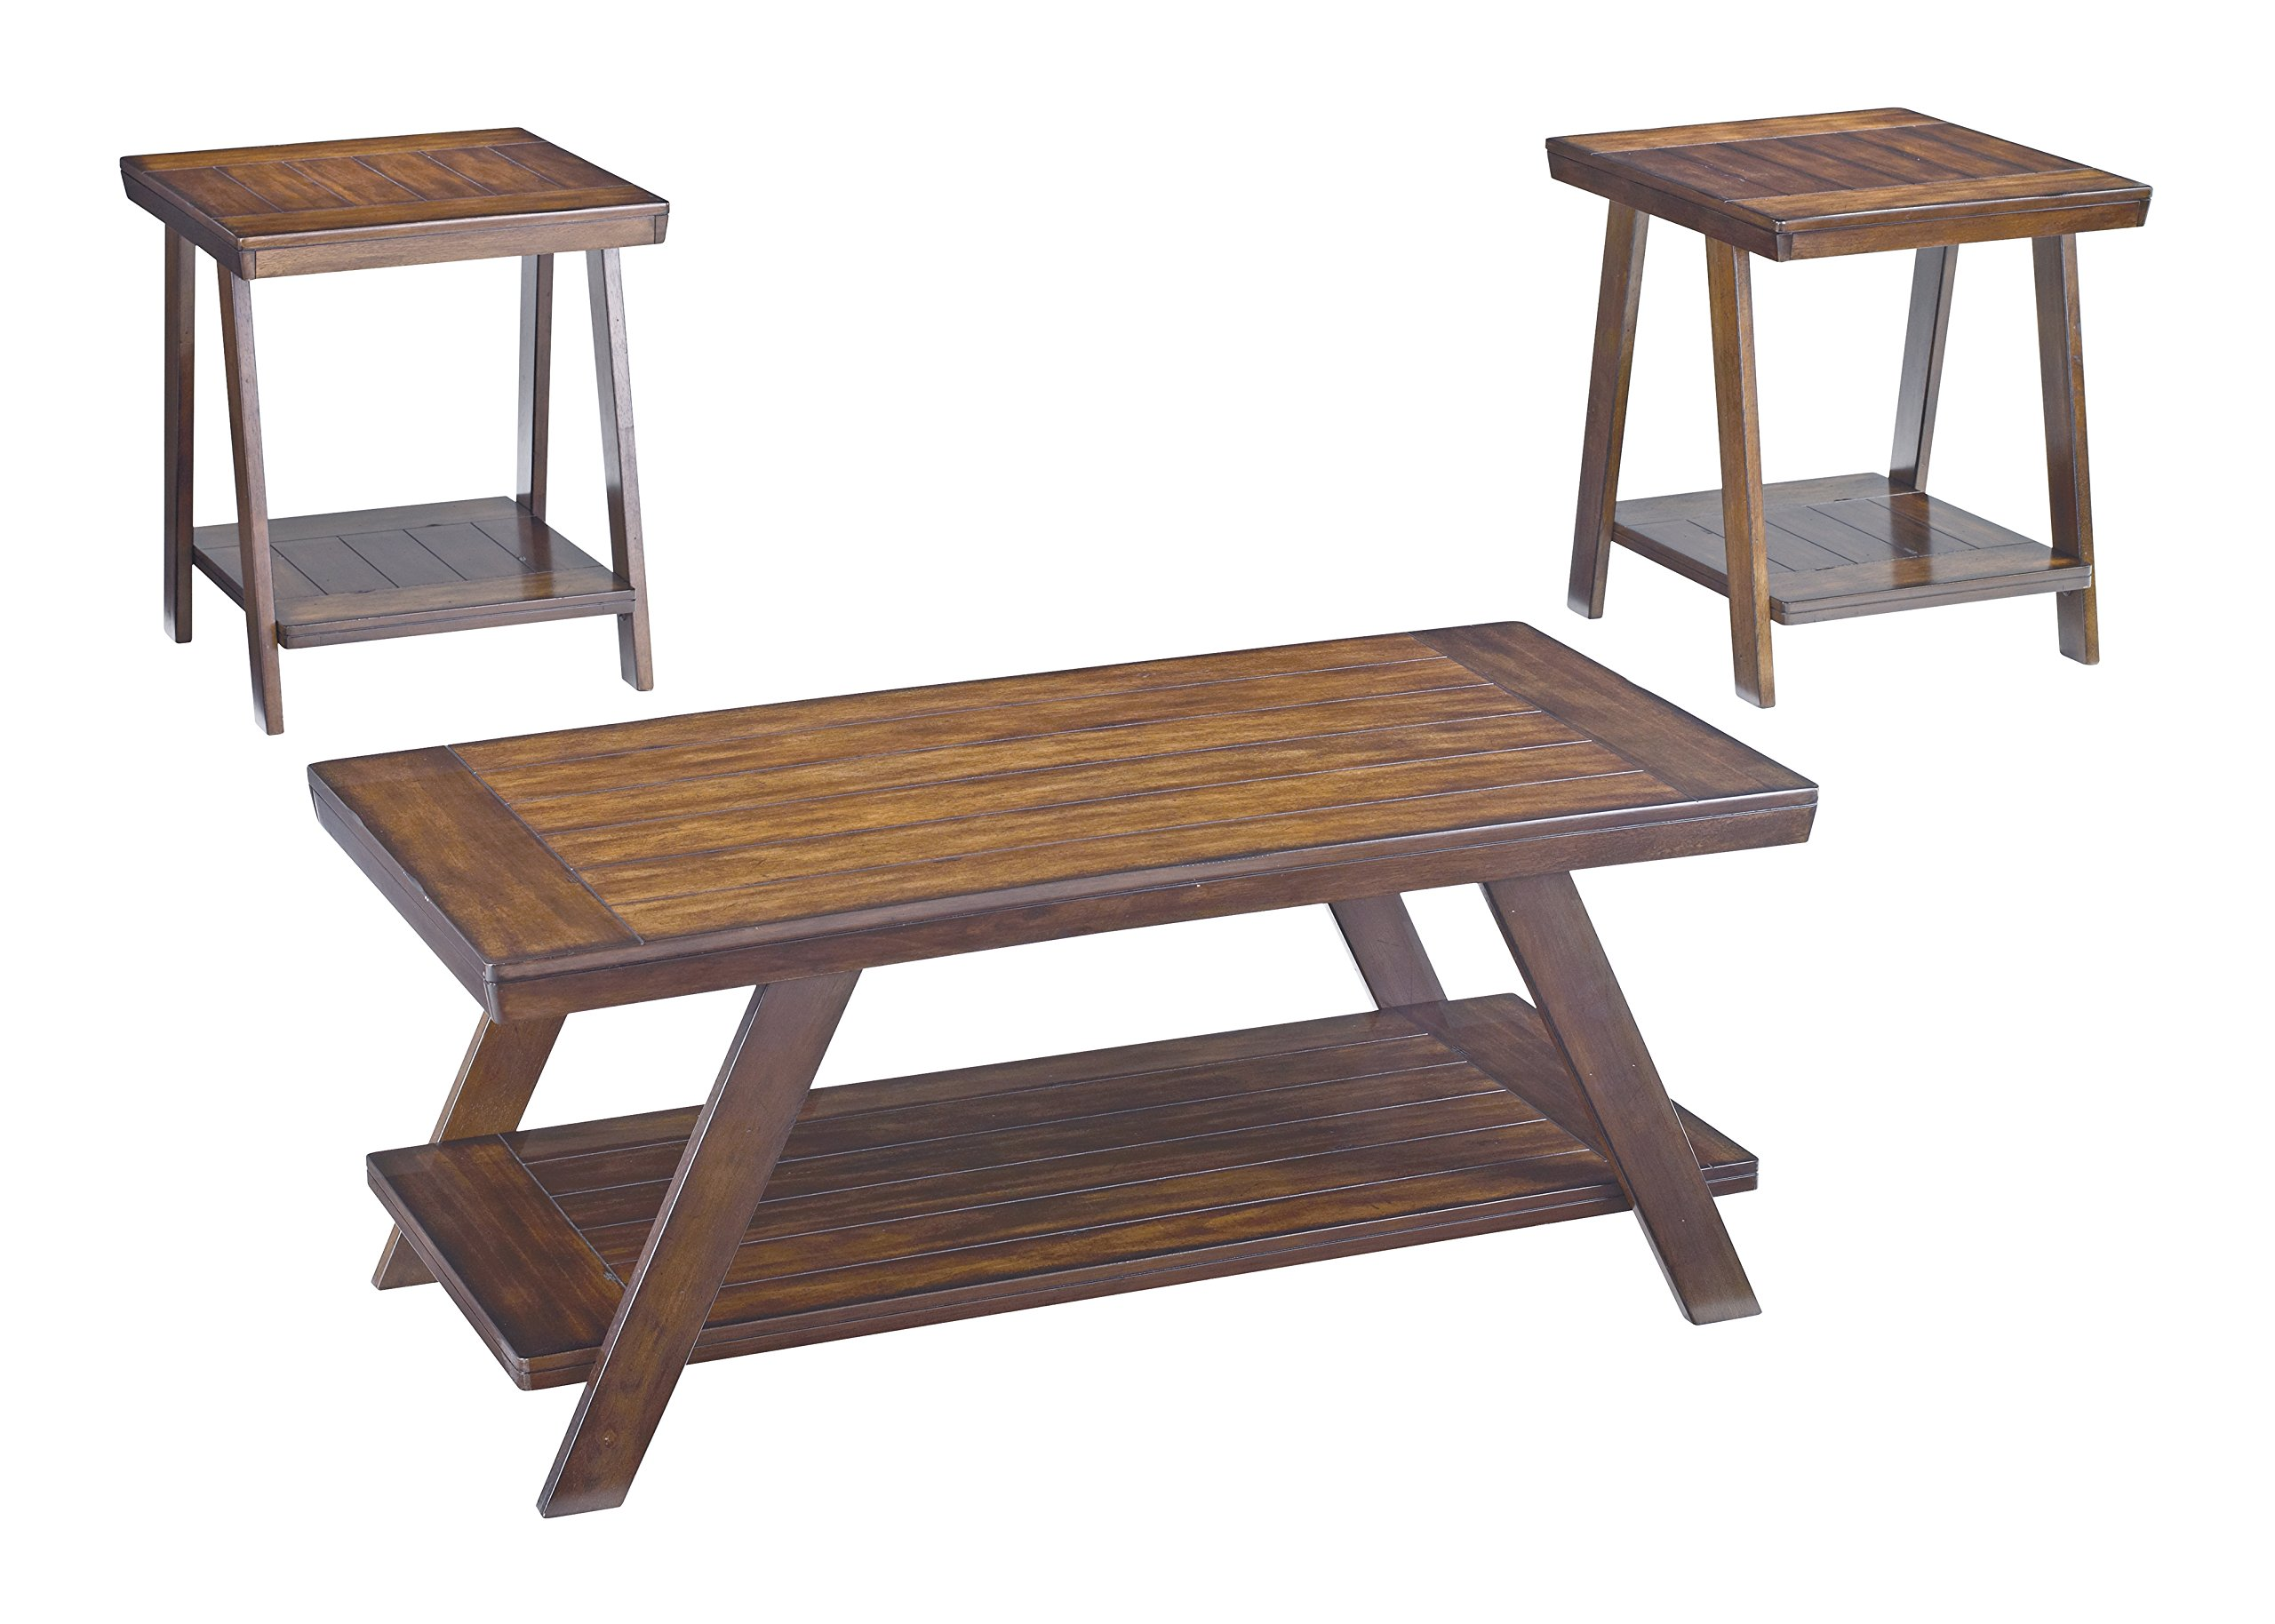 Ashley Furniture Signature Design - Bradley 3-piece Occasional Table Set - Burnished Brown by Signature Design by Ashley